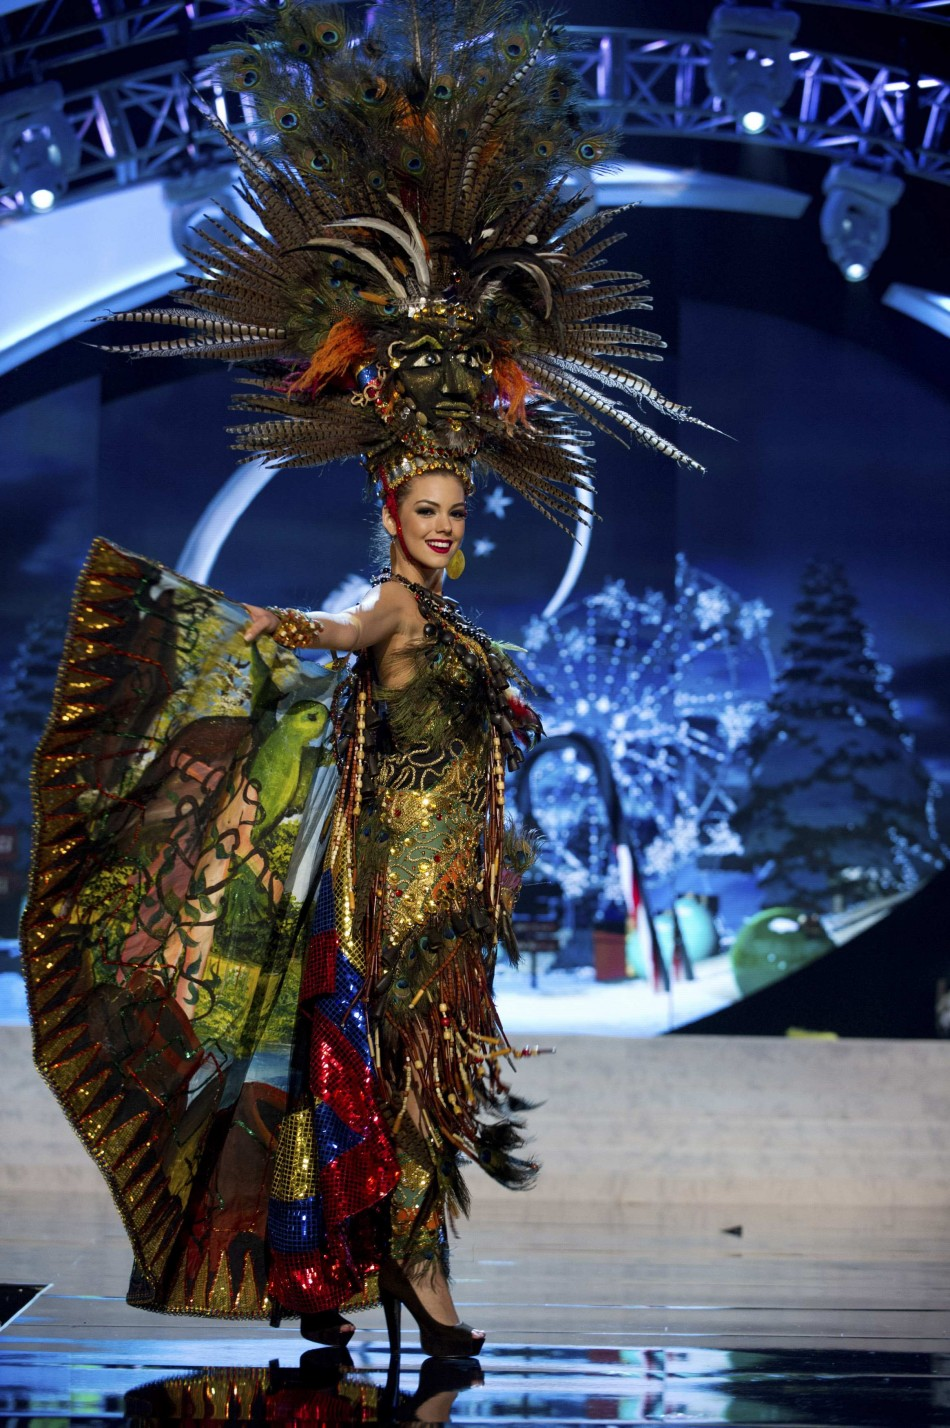 Miss Ecuador Carolina Perez on stage at the 2012 Miss Universe National Costume Show at PH Live in Las Vegas